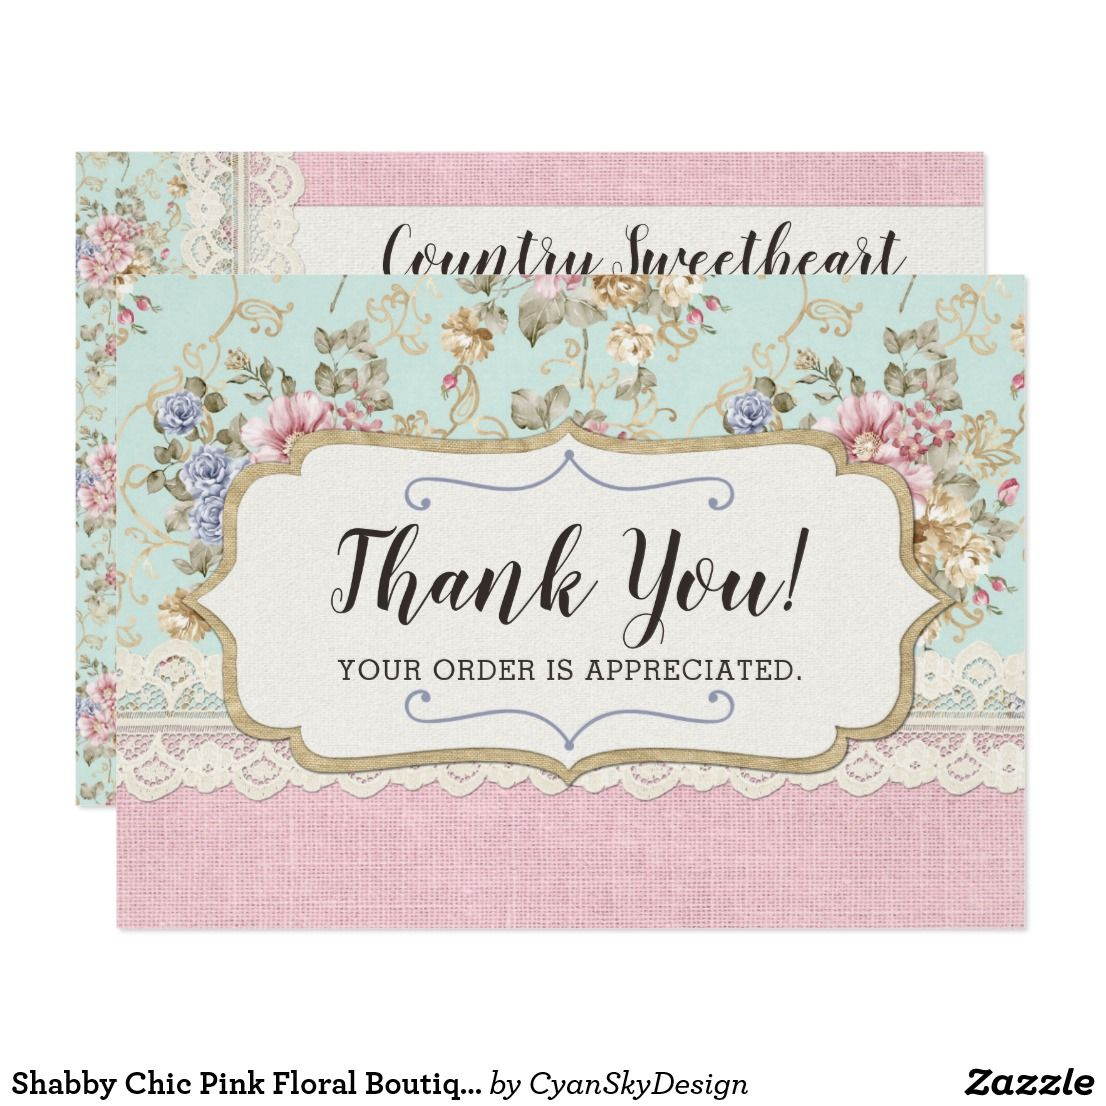 Shabby Chic Pink Floral Boutique Thank You Card Zazzle Com With